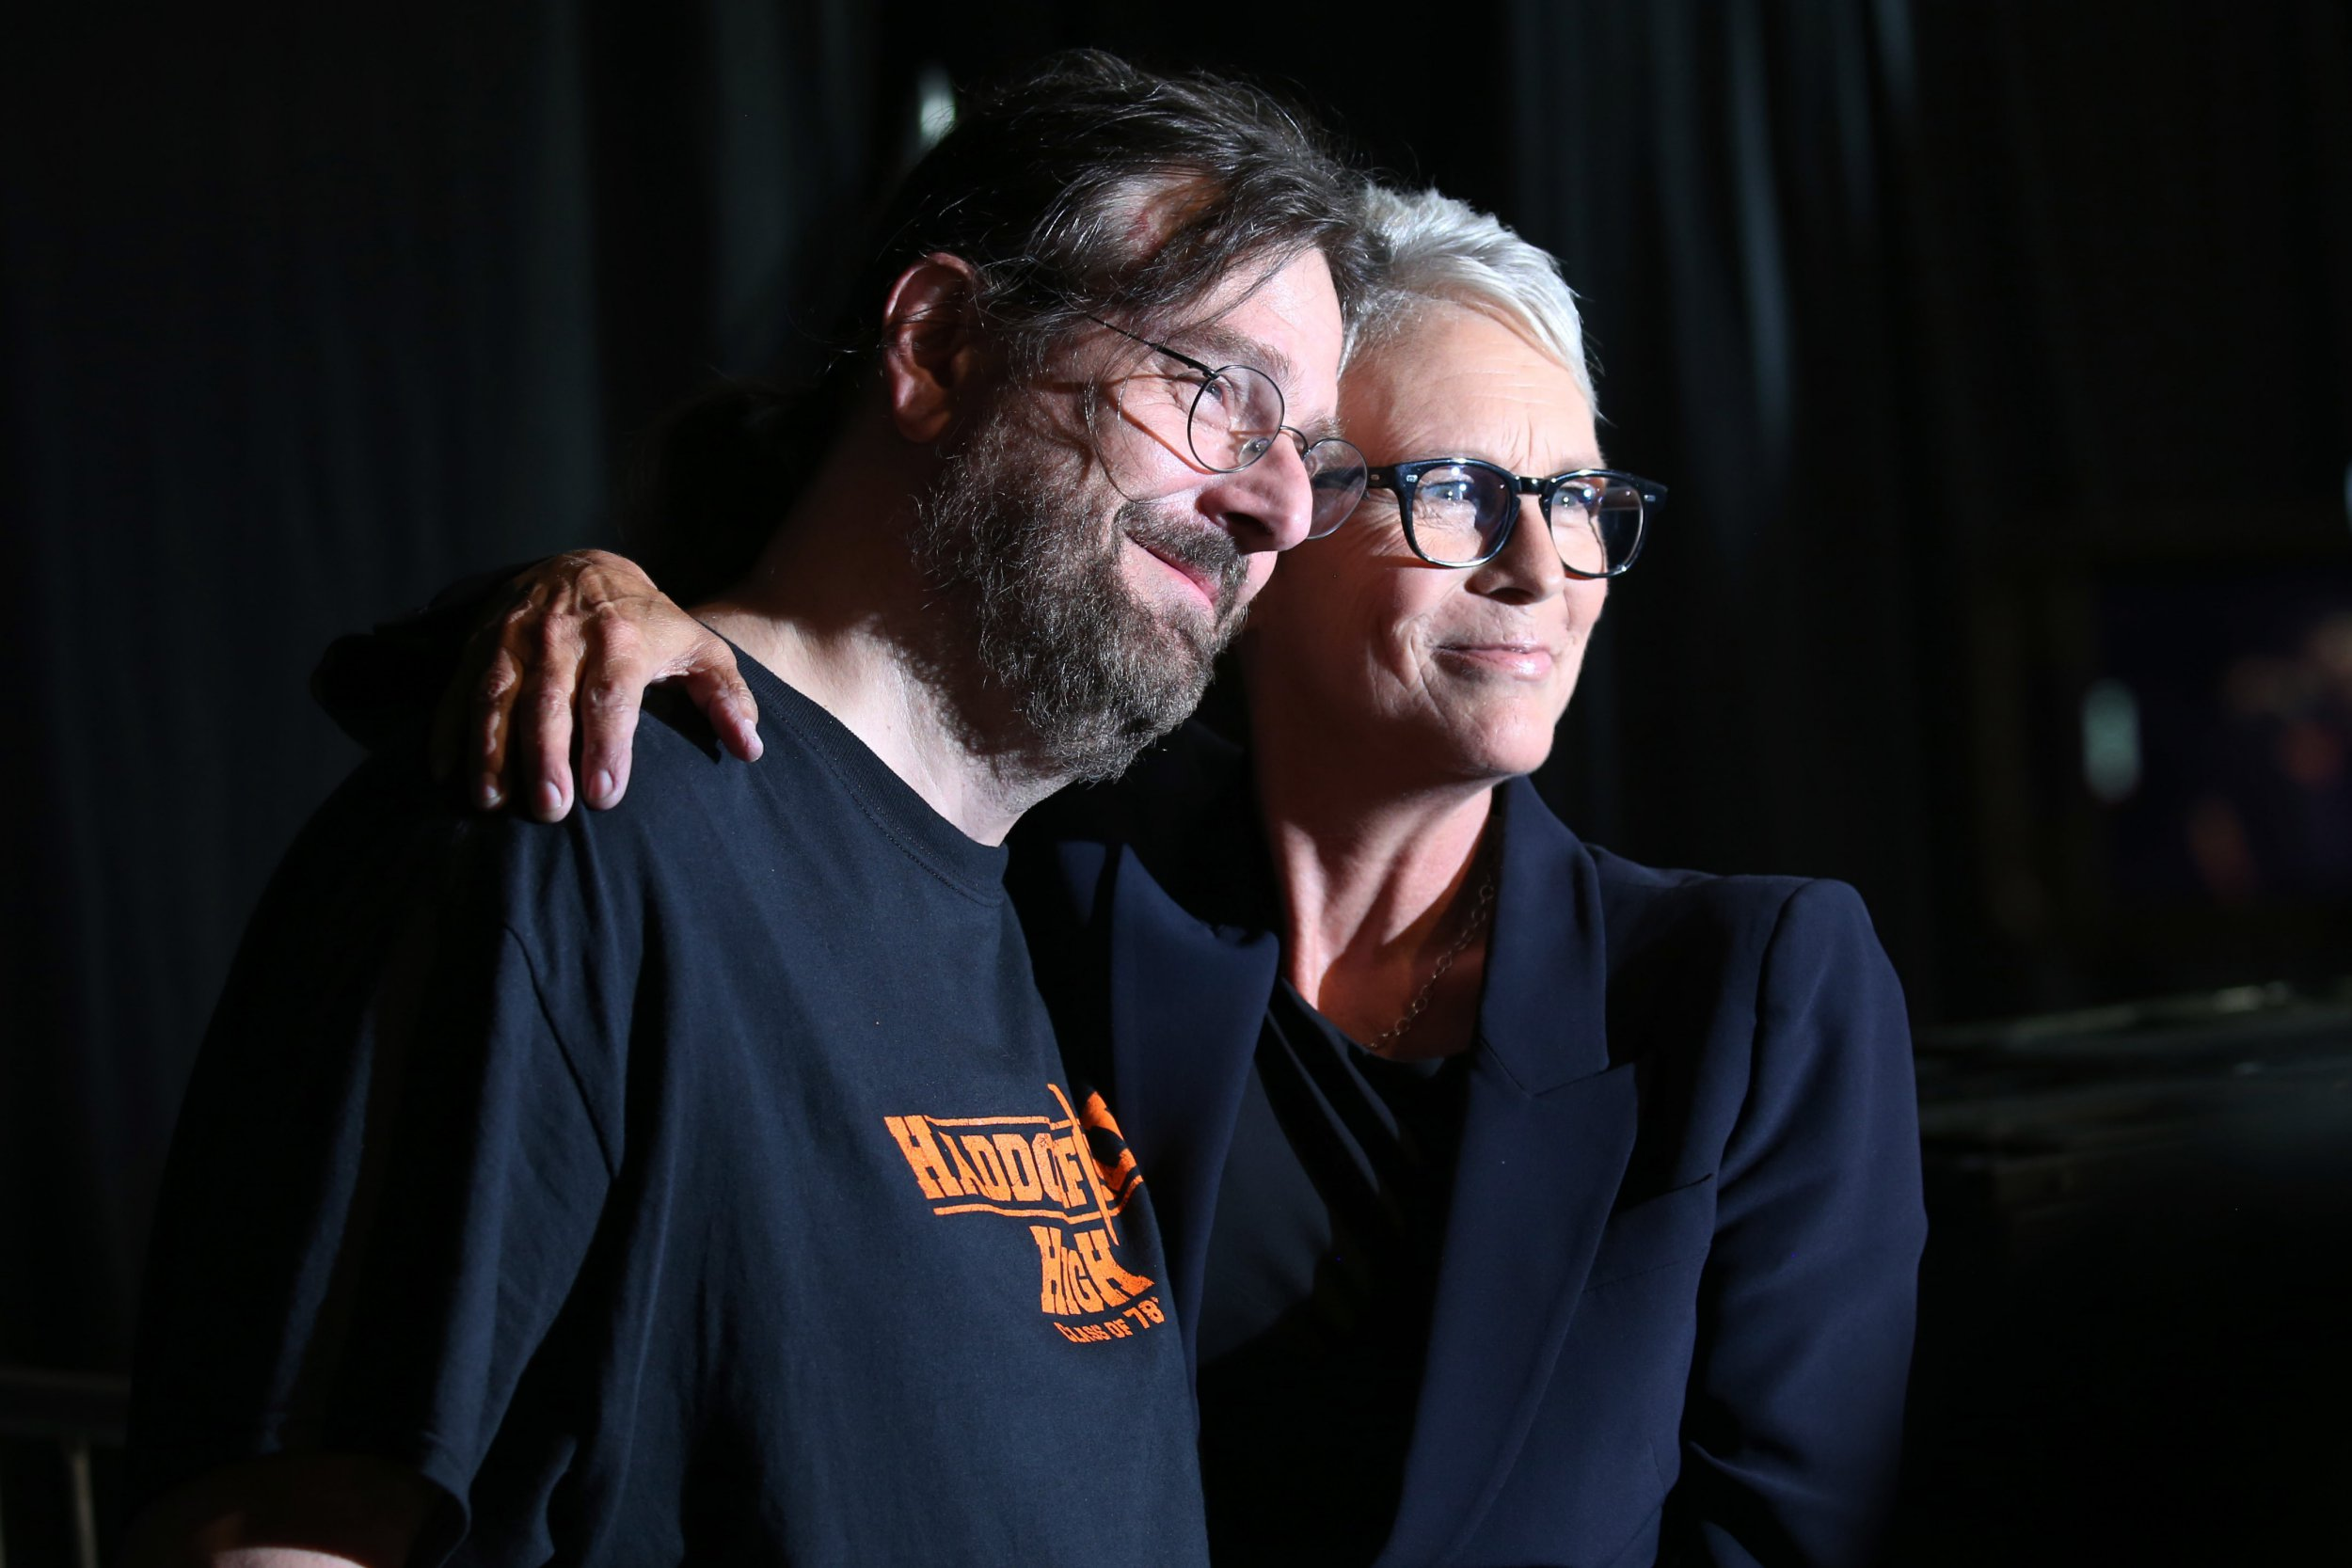 Jamie Lee Curtis embraces crying fan who revealed she 'saved his life' in armed home invasion